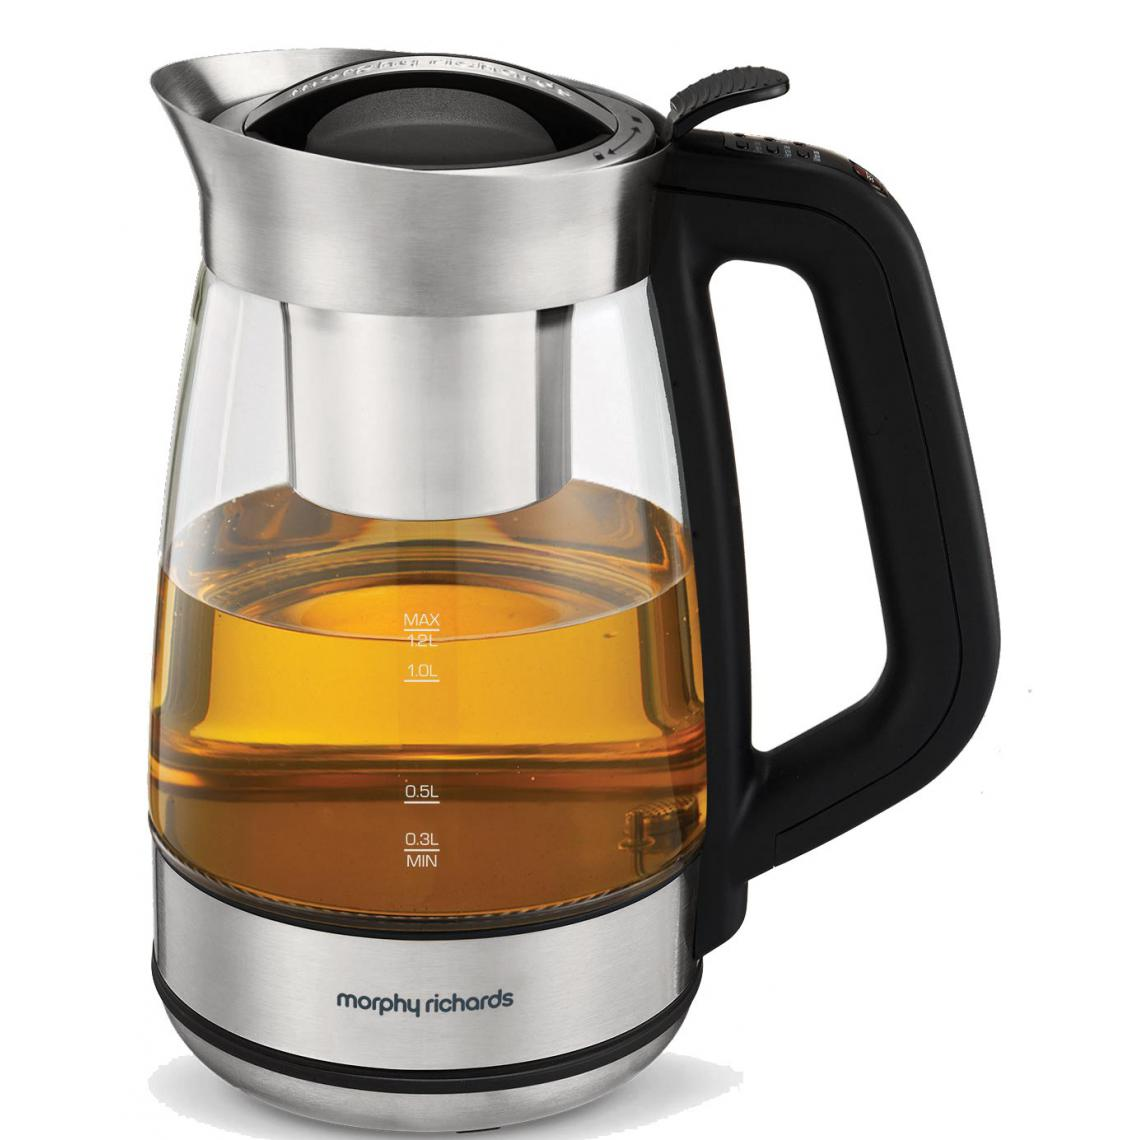 Morphy Richards Theiere MORPHY RICHARDS M 132002 EE